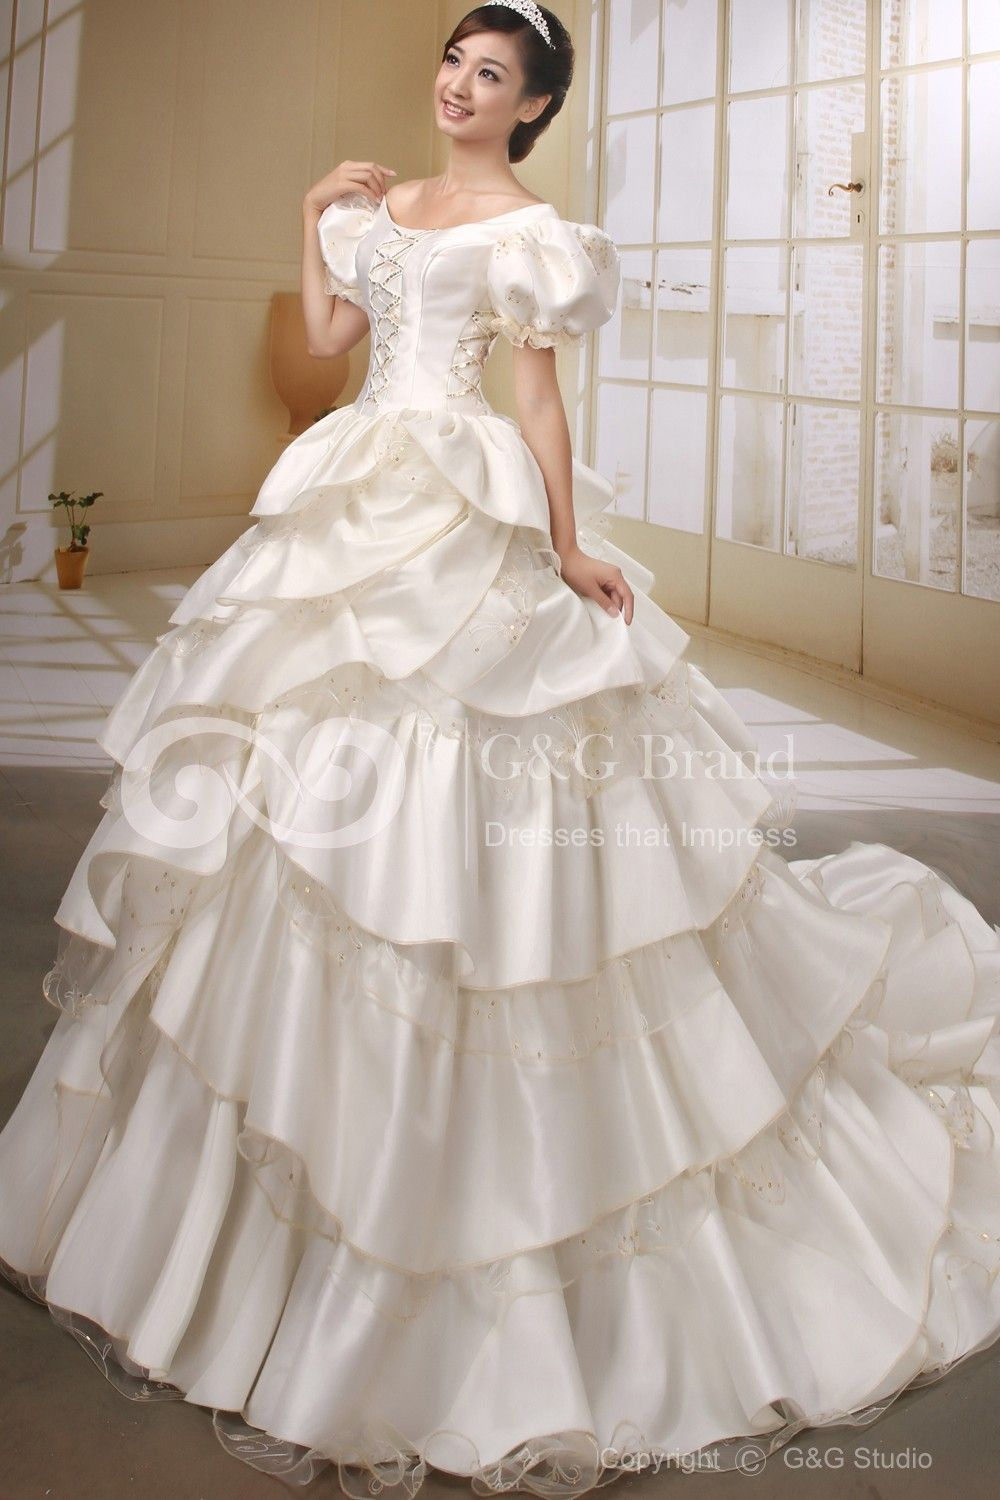 Off the shoulder ball gown wedding dresseslacetieredruffles